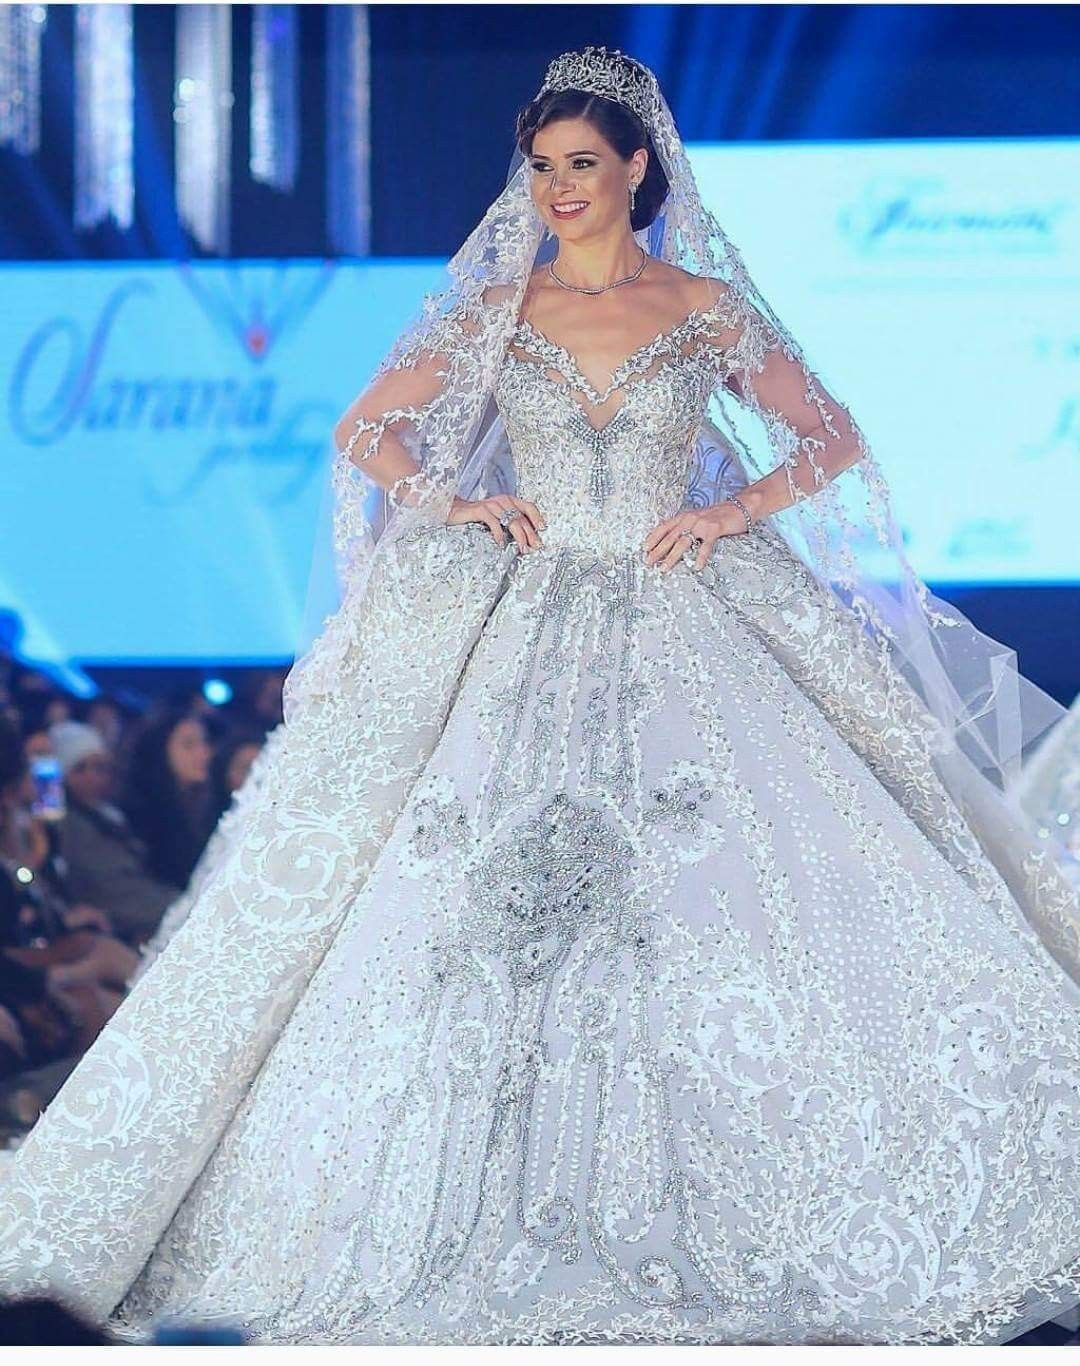 The Most Expensive Wedding Dress In The World By Fashion Designer Hany Elbehiery Expensive Wedding Dress Most Expensive Wedding Dress Elegant Wedding Dress